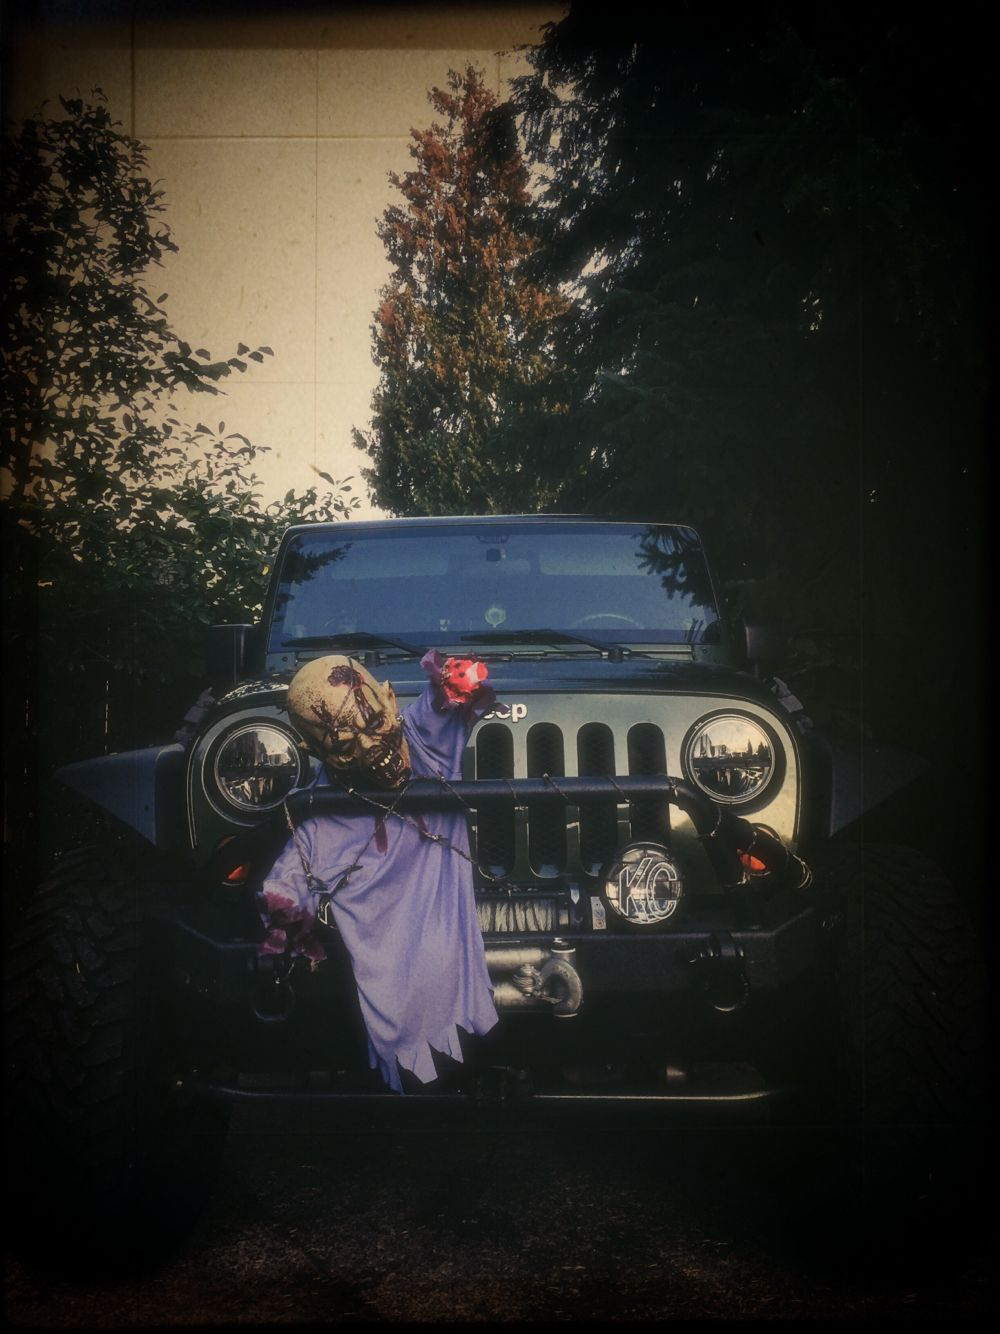 Halloween is near, Jeep decorations are a MUST! #ZombieJeep